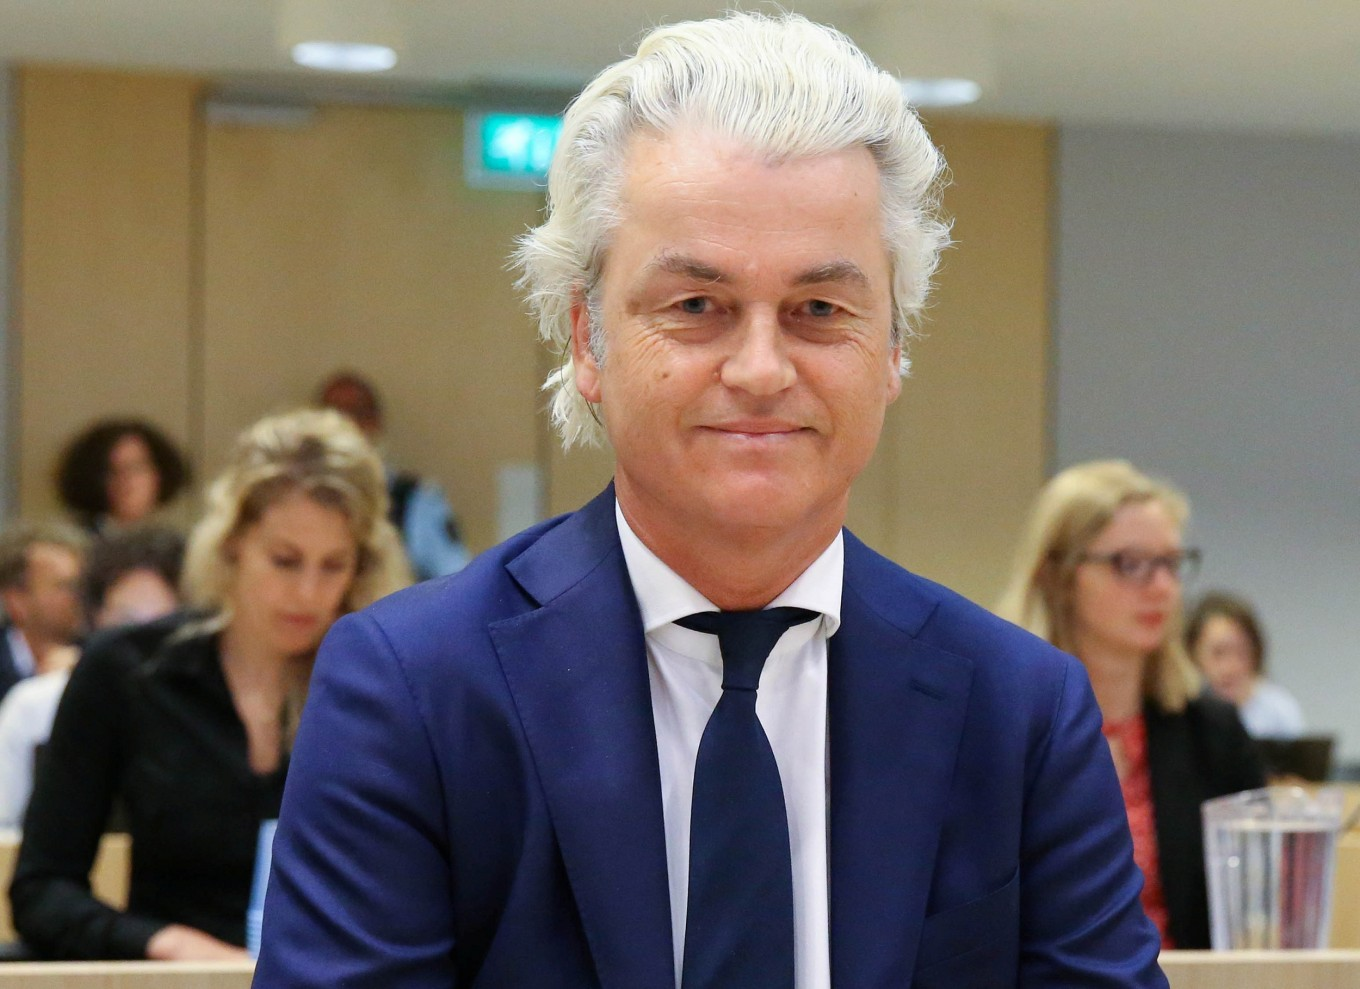 Dutch anti-Islam party to hold Prophet Mohammad cartoon competition